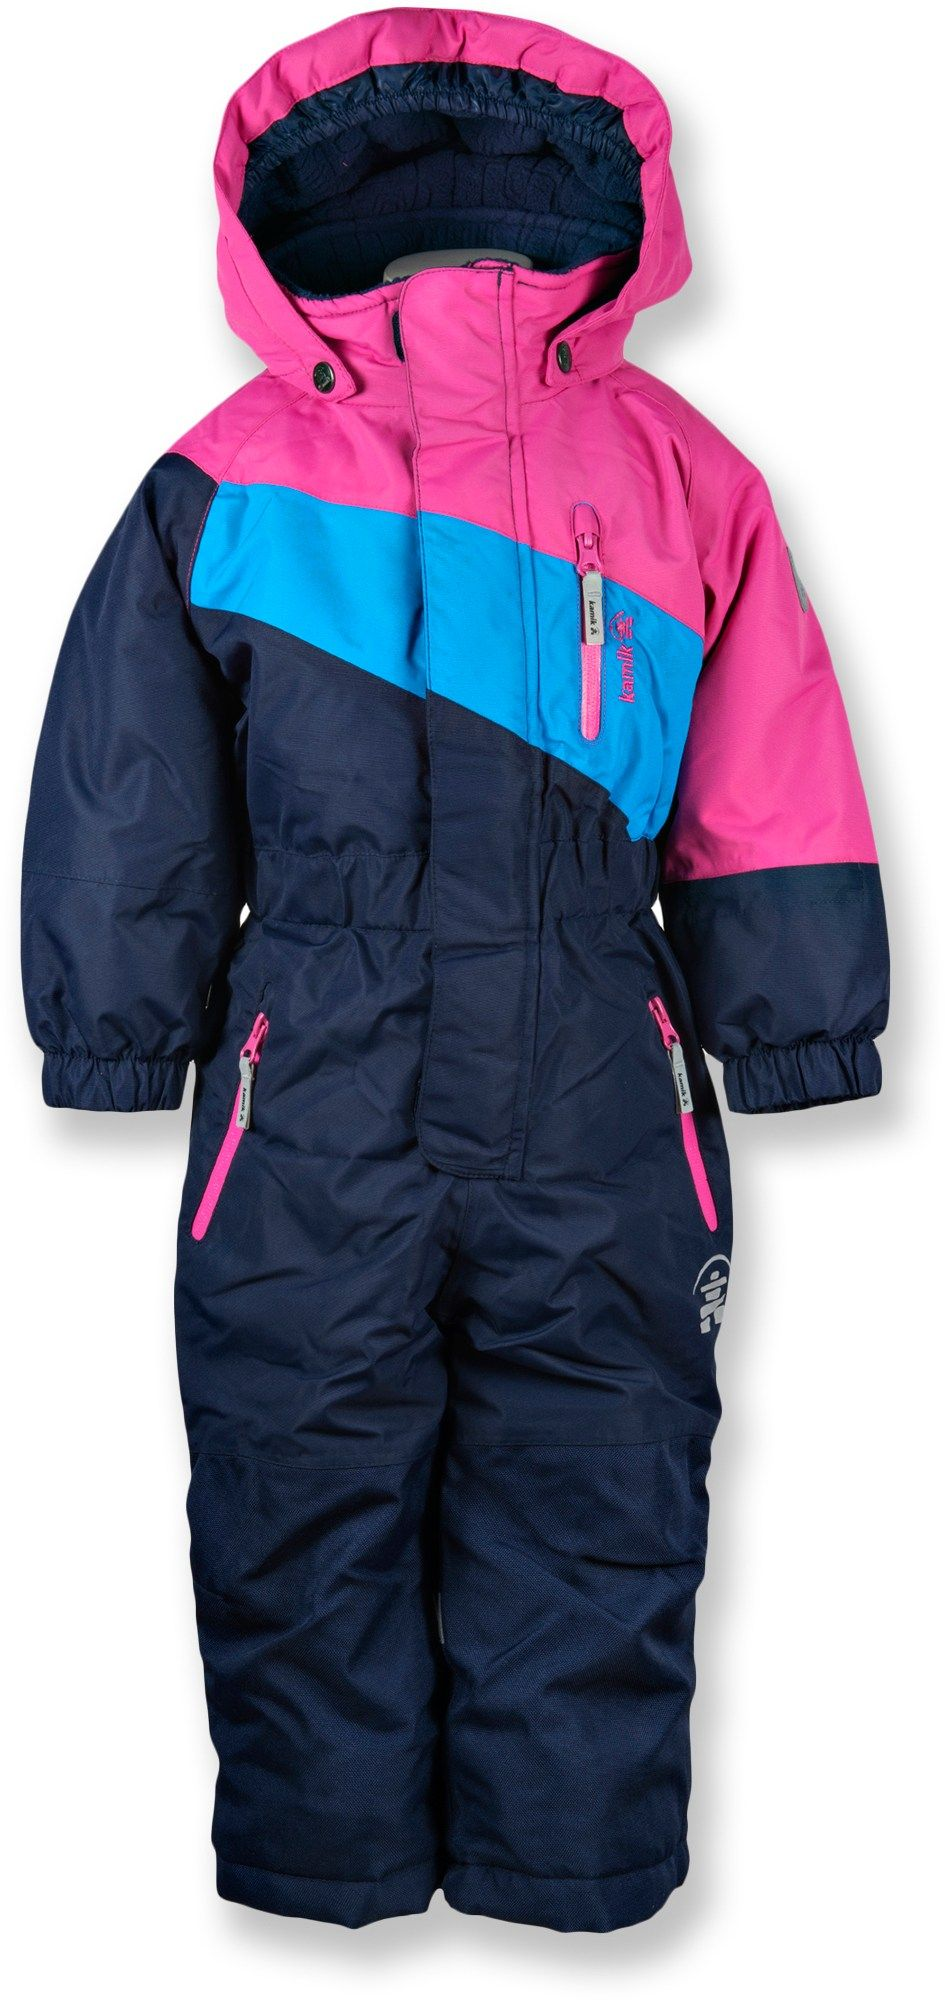 1bf79e644dab Kamik Female Star Gazer Insulated Suit - Toddler Girls  Girls ...